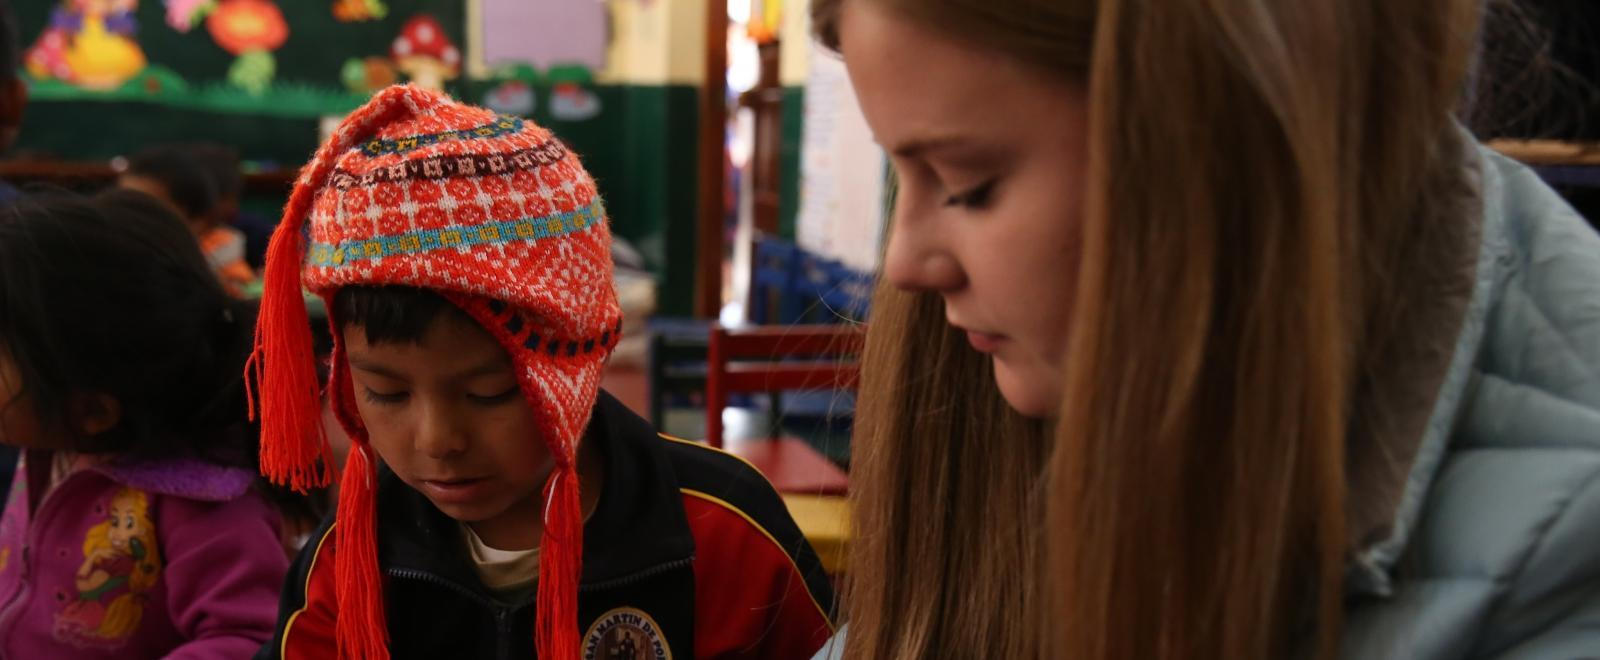 A volunteer working with children in Peru sits with a child in a classroom to help them with an activity.